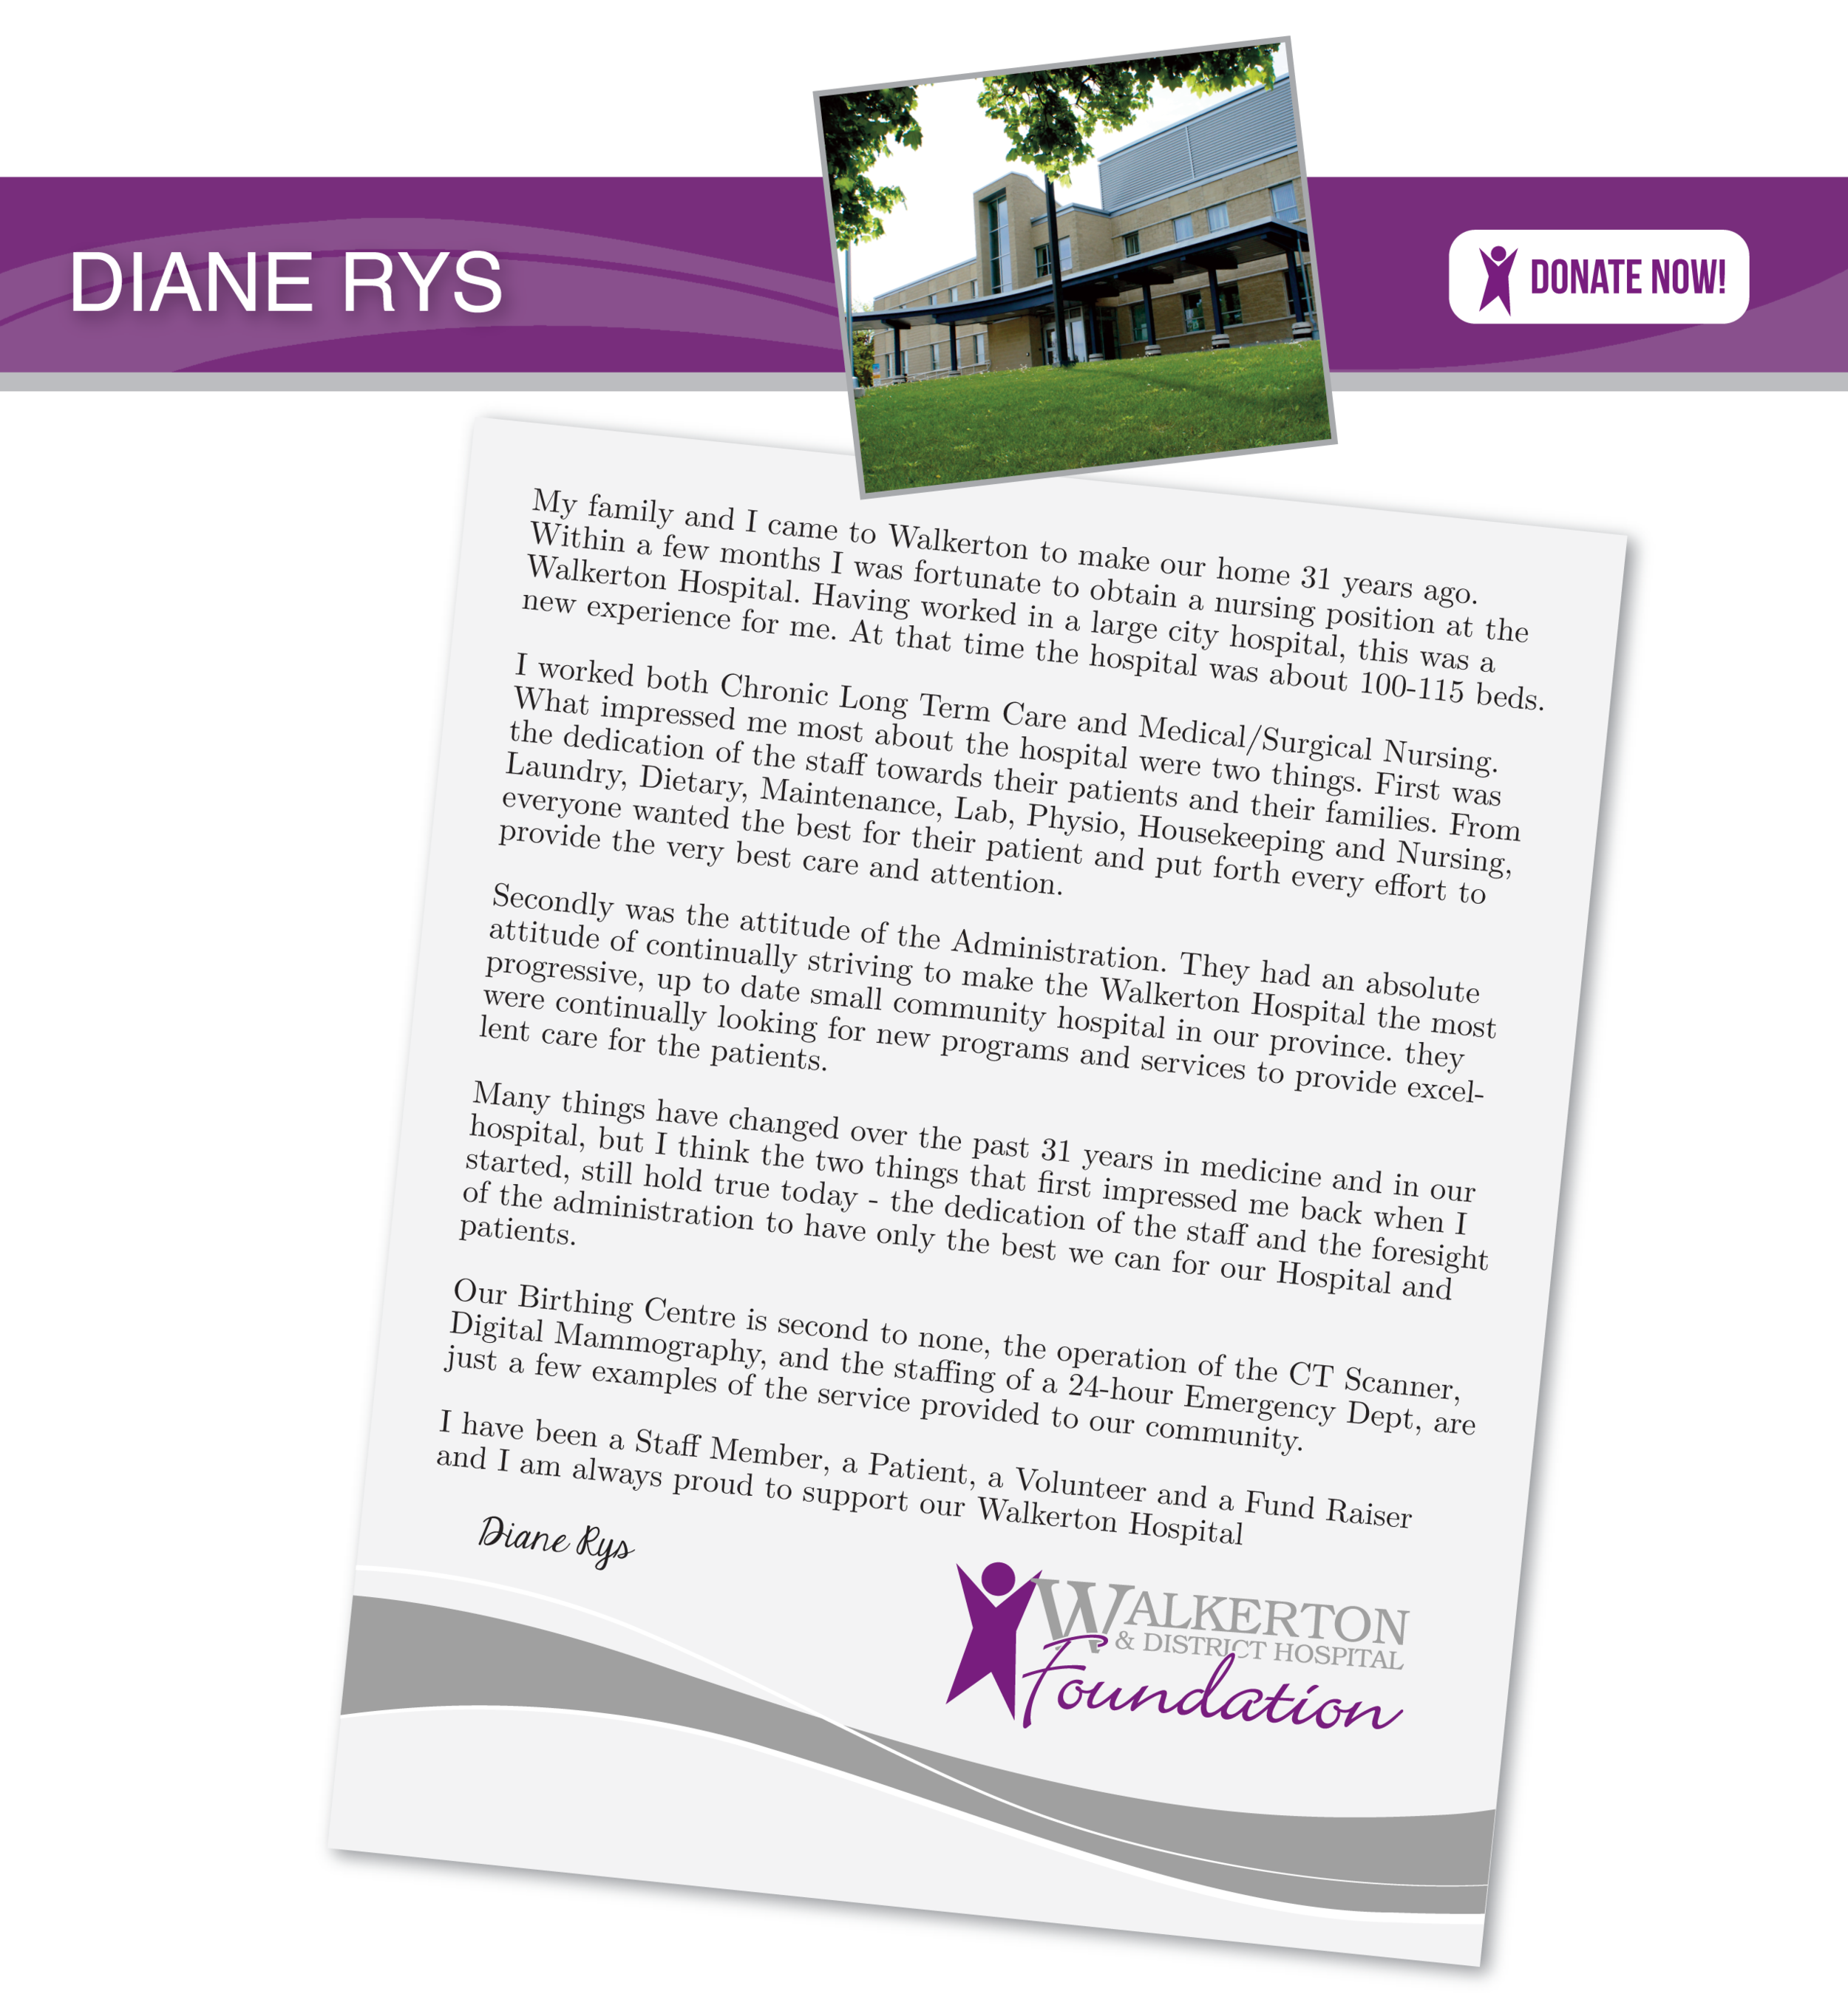 WDHF_STORY OF THE HEART_DIANE RYS.png